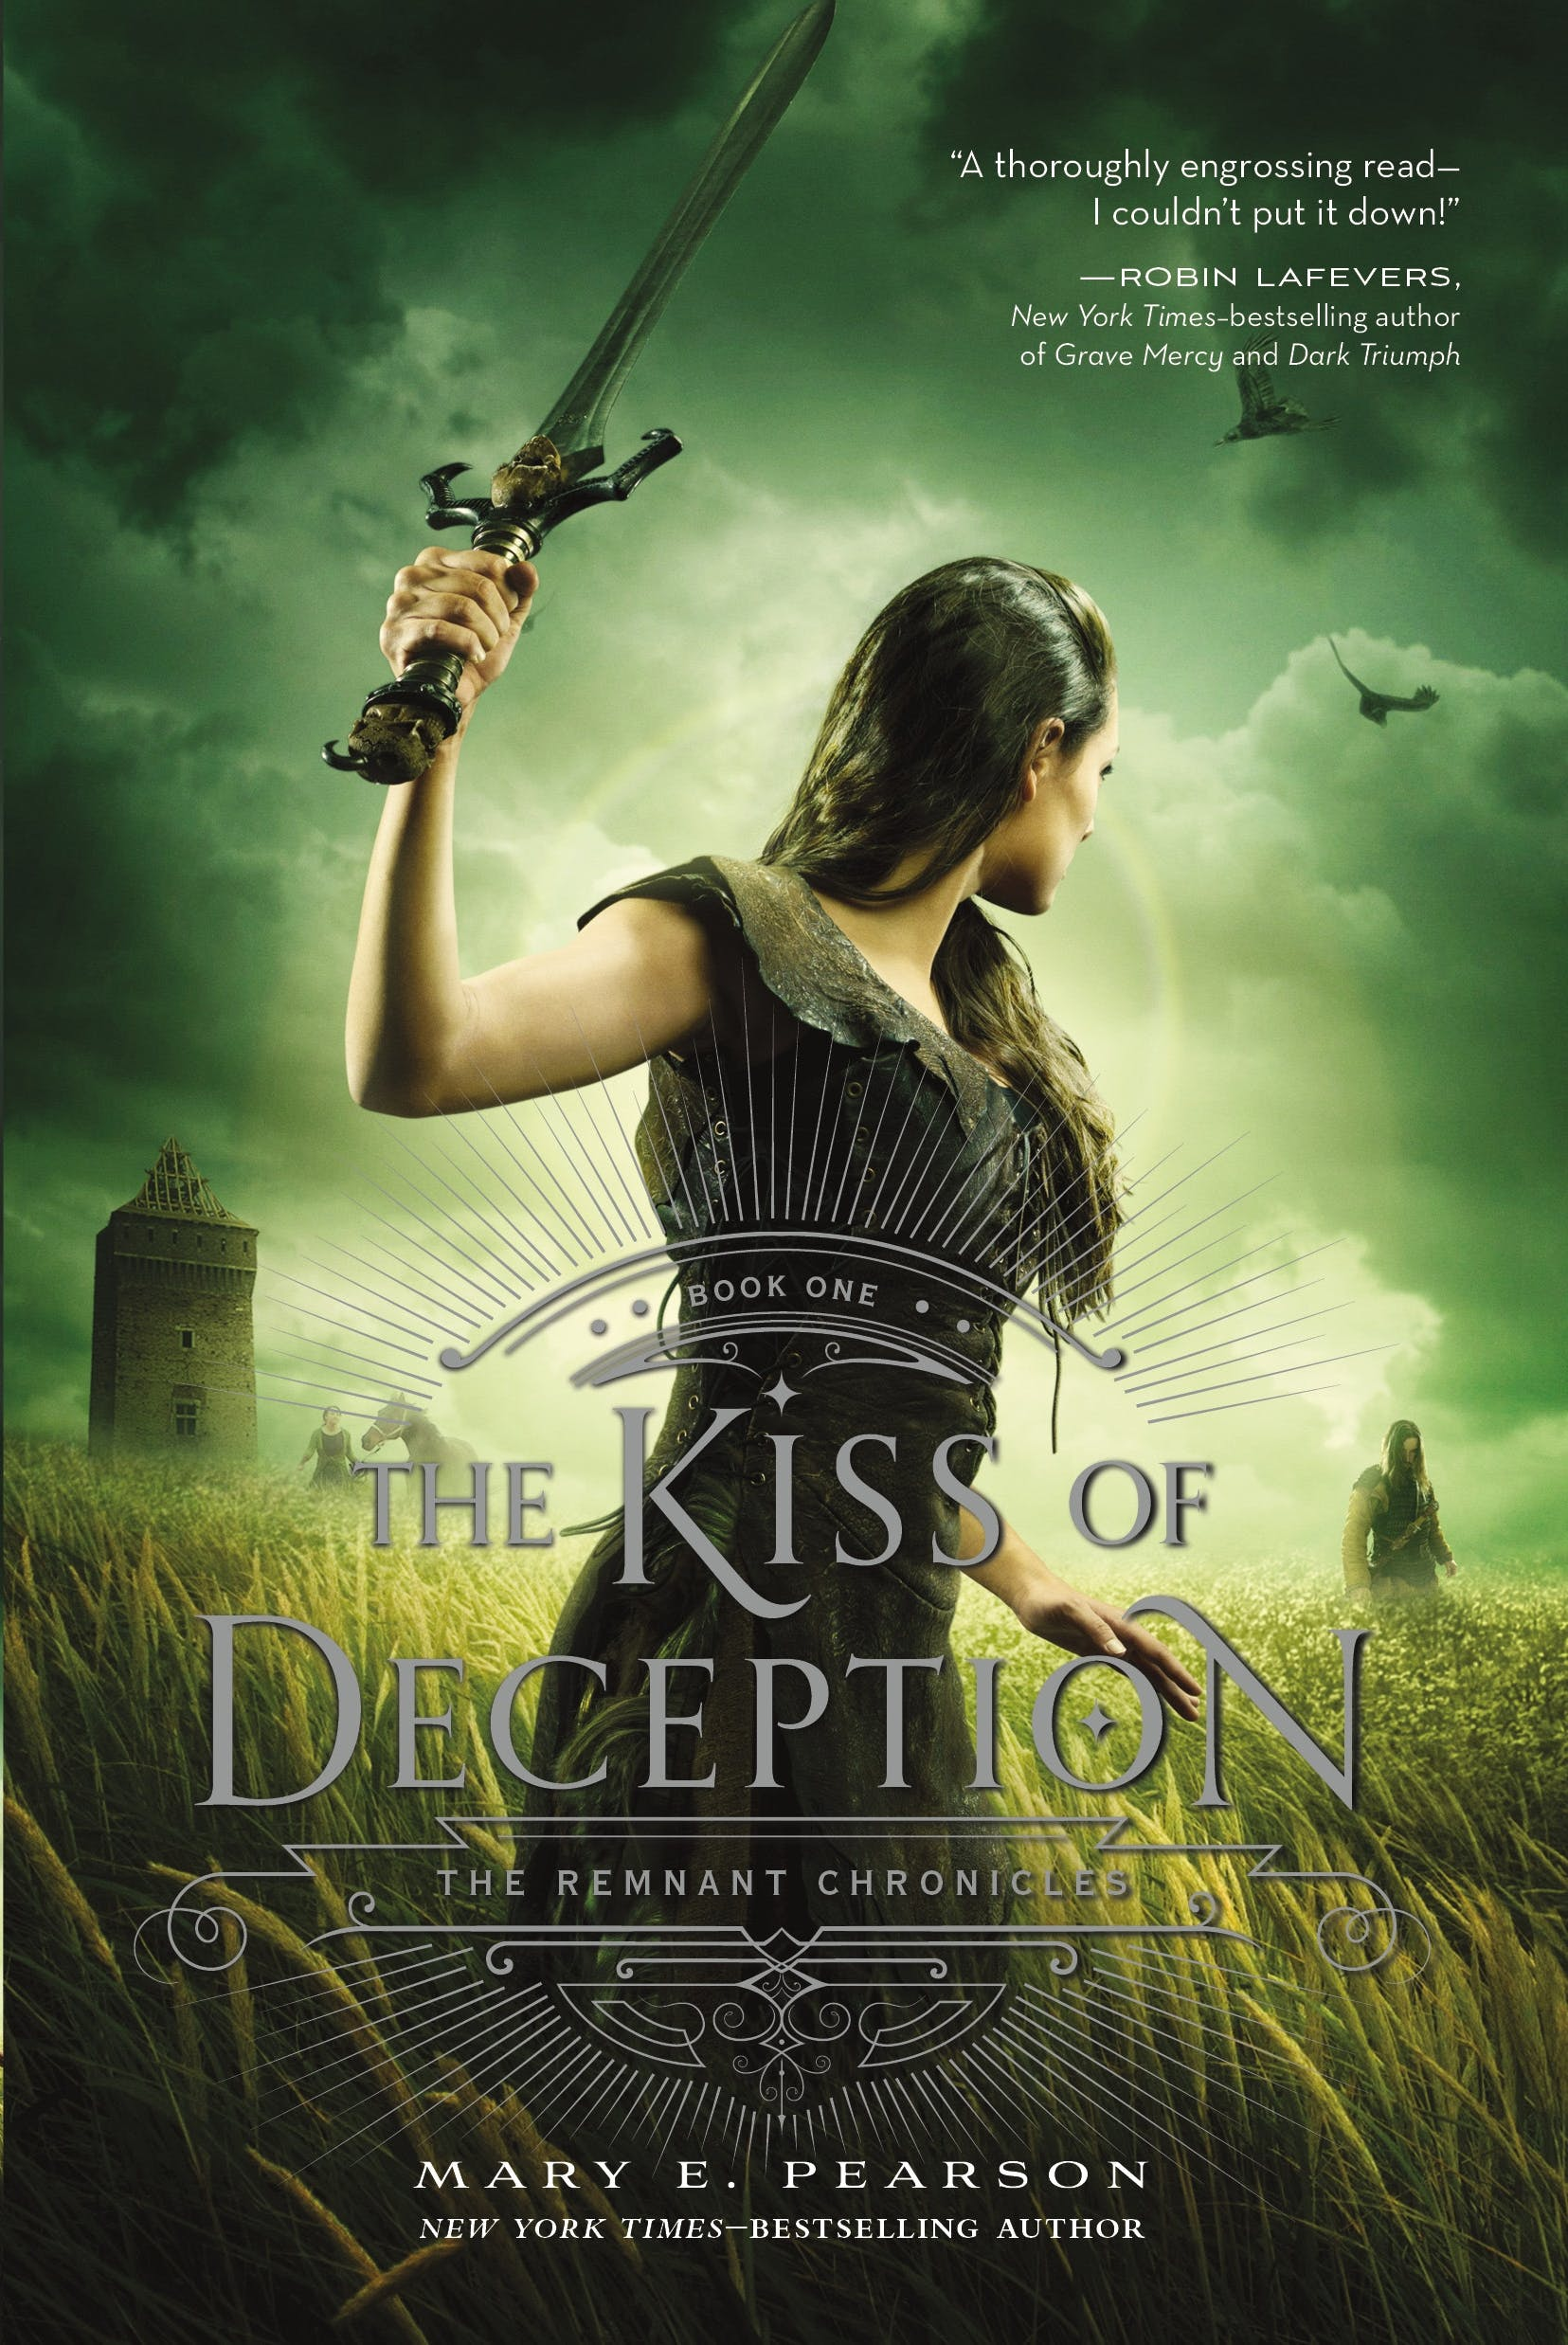 Image of The Kiss of Deception